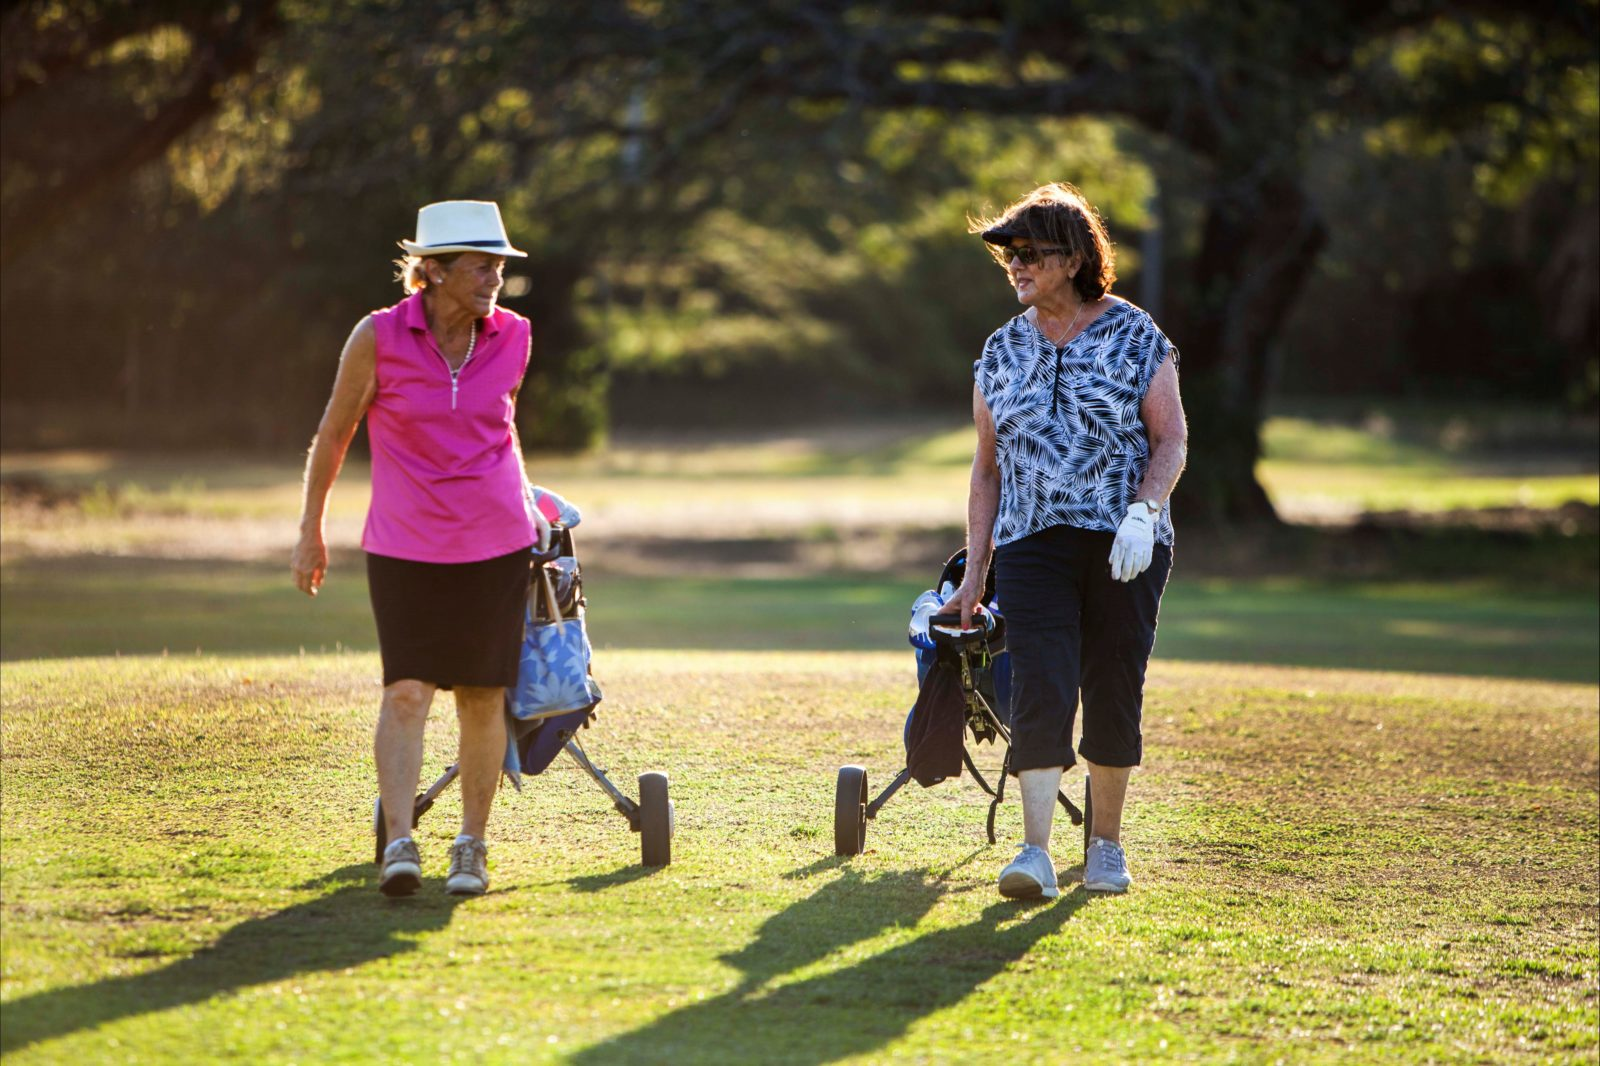 Lovely ladies playing a game at gardens park golf links